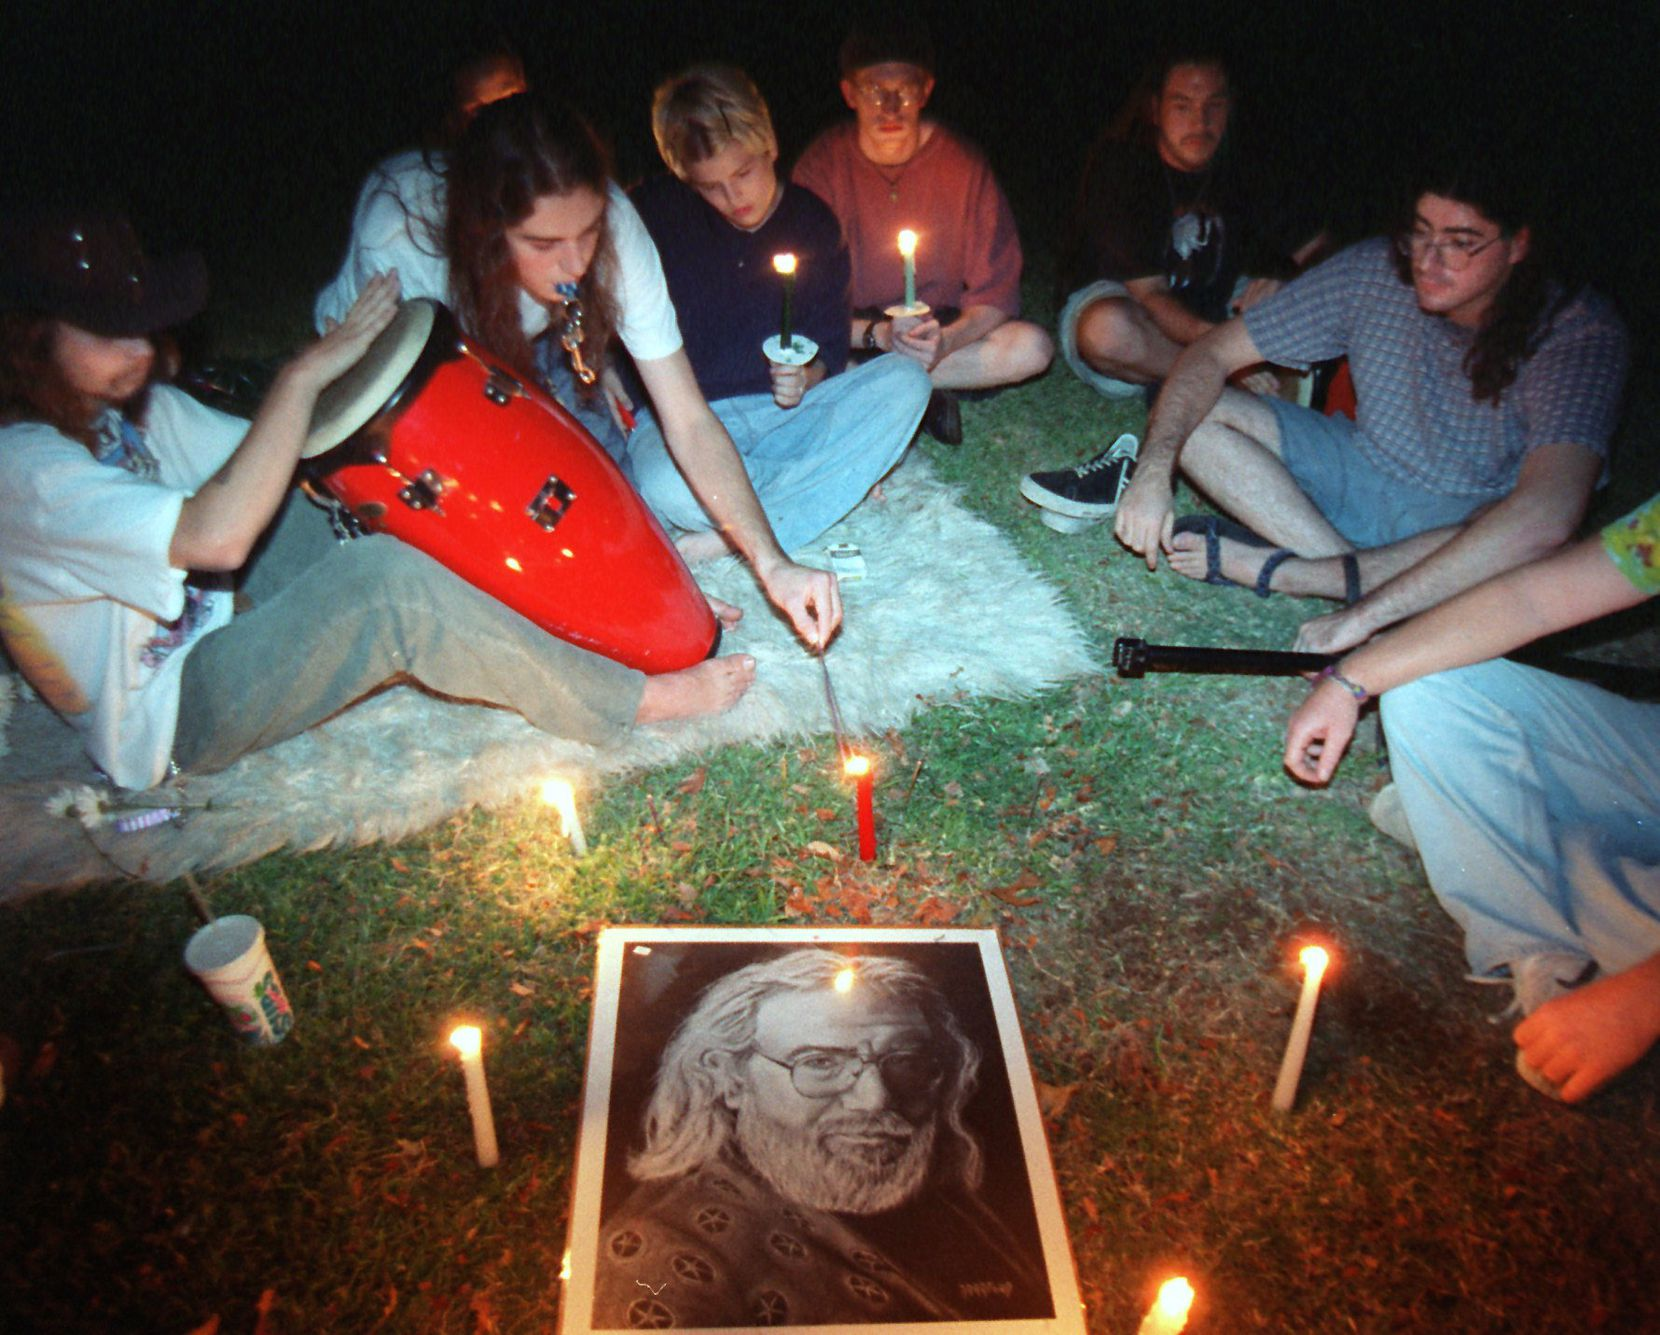 In August 1995, Deadheads gathered in Lee Park for a candlelight  vigil to mark the death of Jerry Garcia.